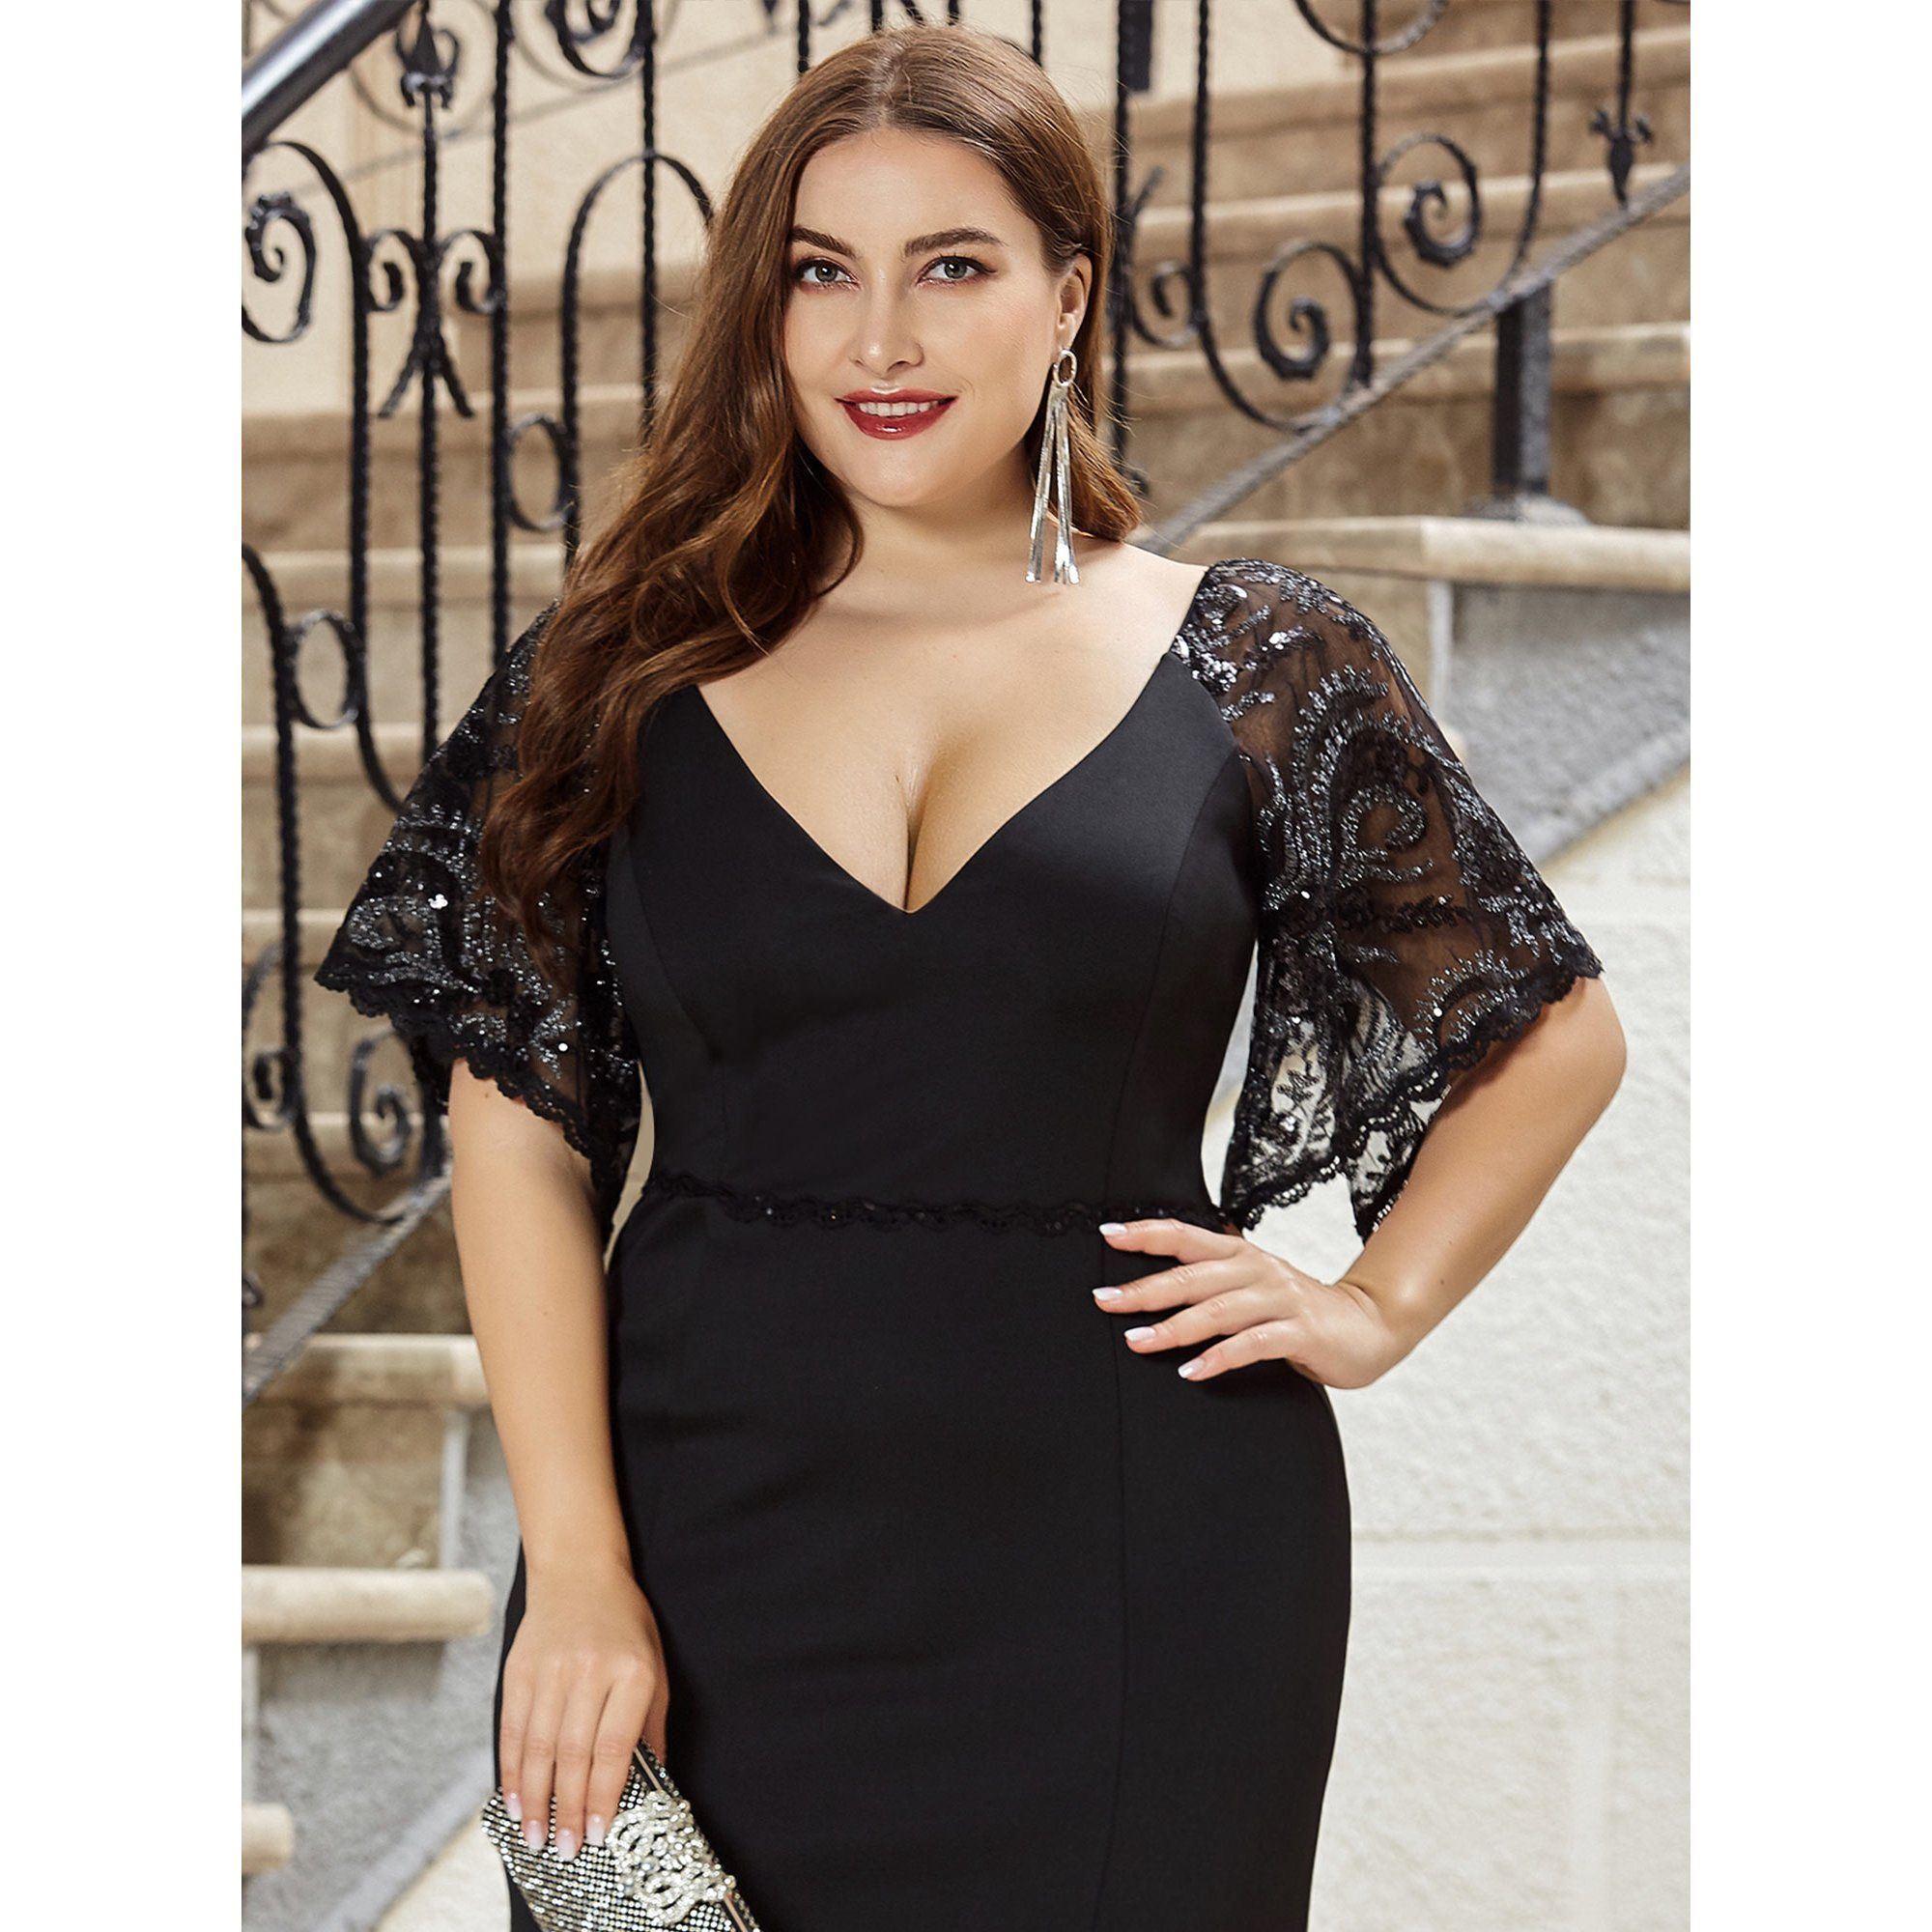 Ever Pretty Ever Pretty Evening Dress For Women Formal Plus Size Bridesmaid Dress In 2021 Bridesmaid Dresses Plus Size Evening Dresses Plus Size Plus Size Bridesmaid [ 2000 x 2000 Pixel ]